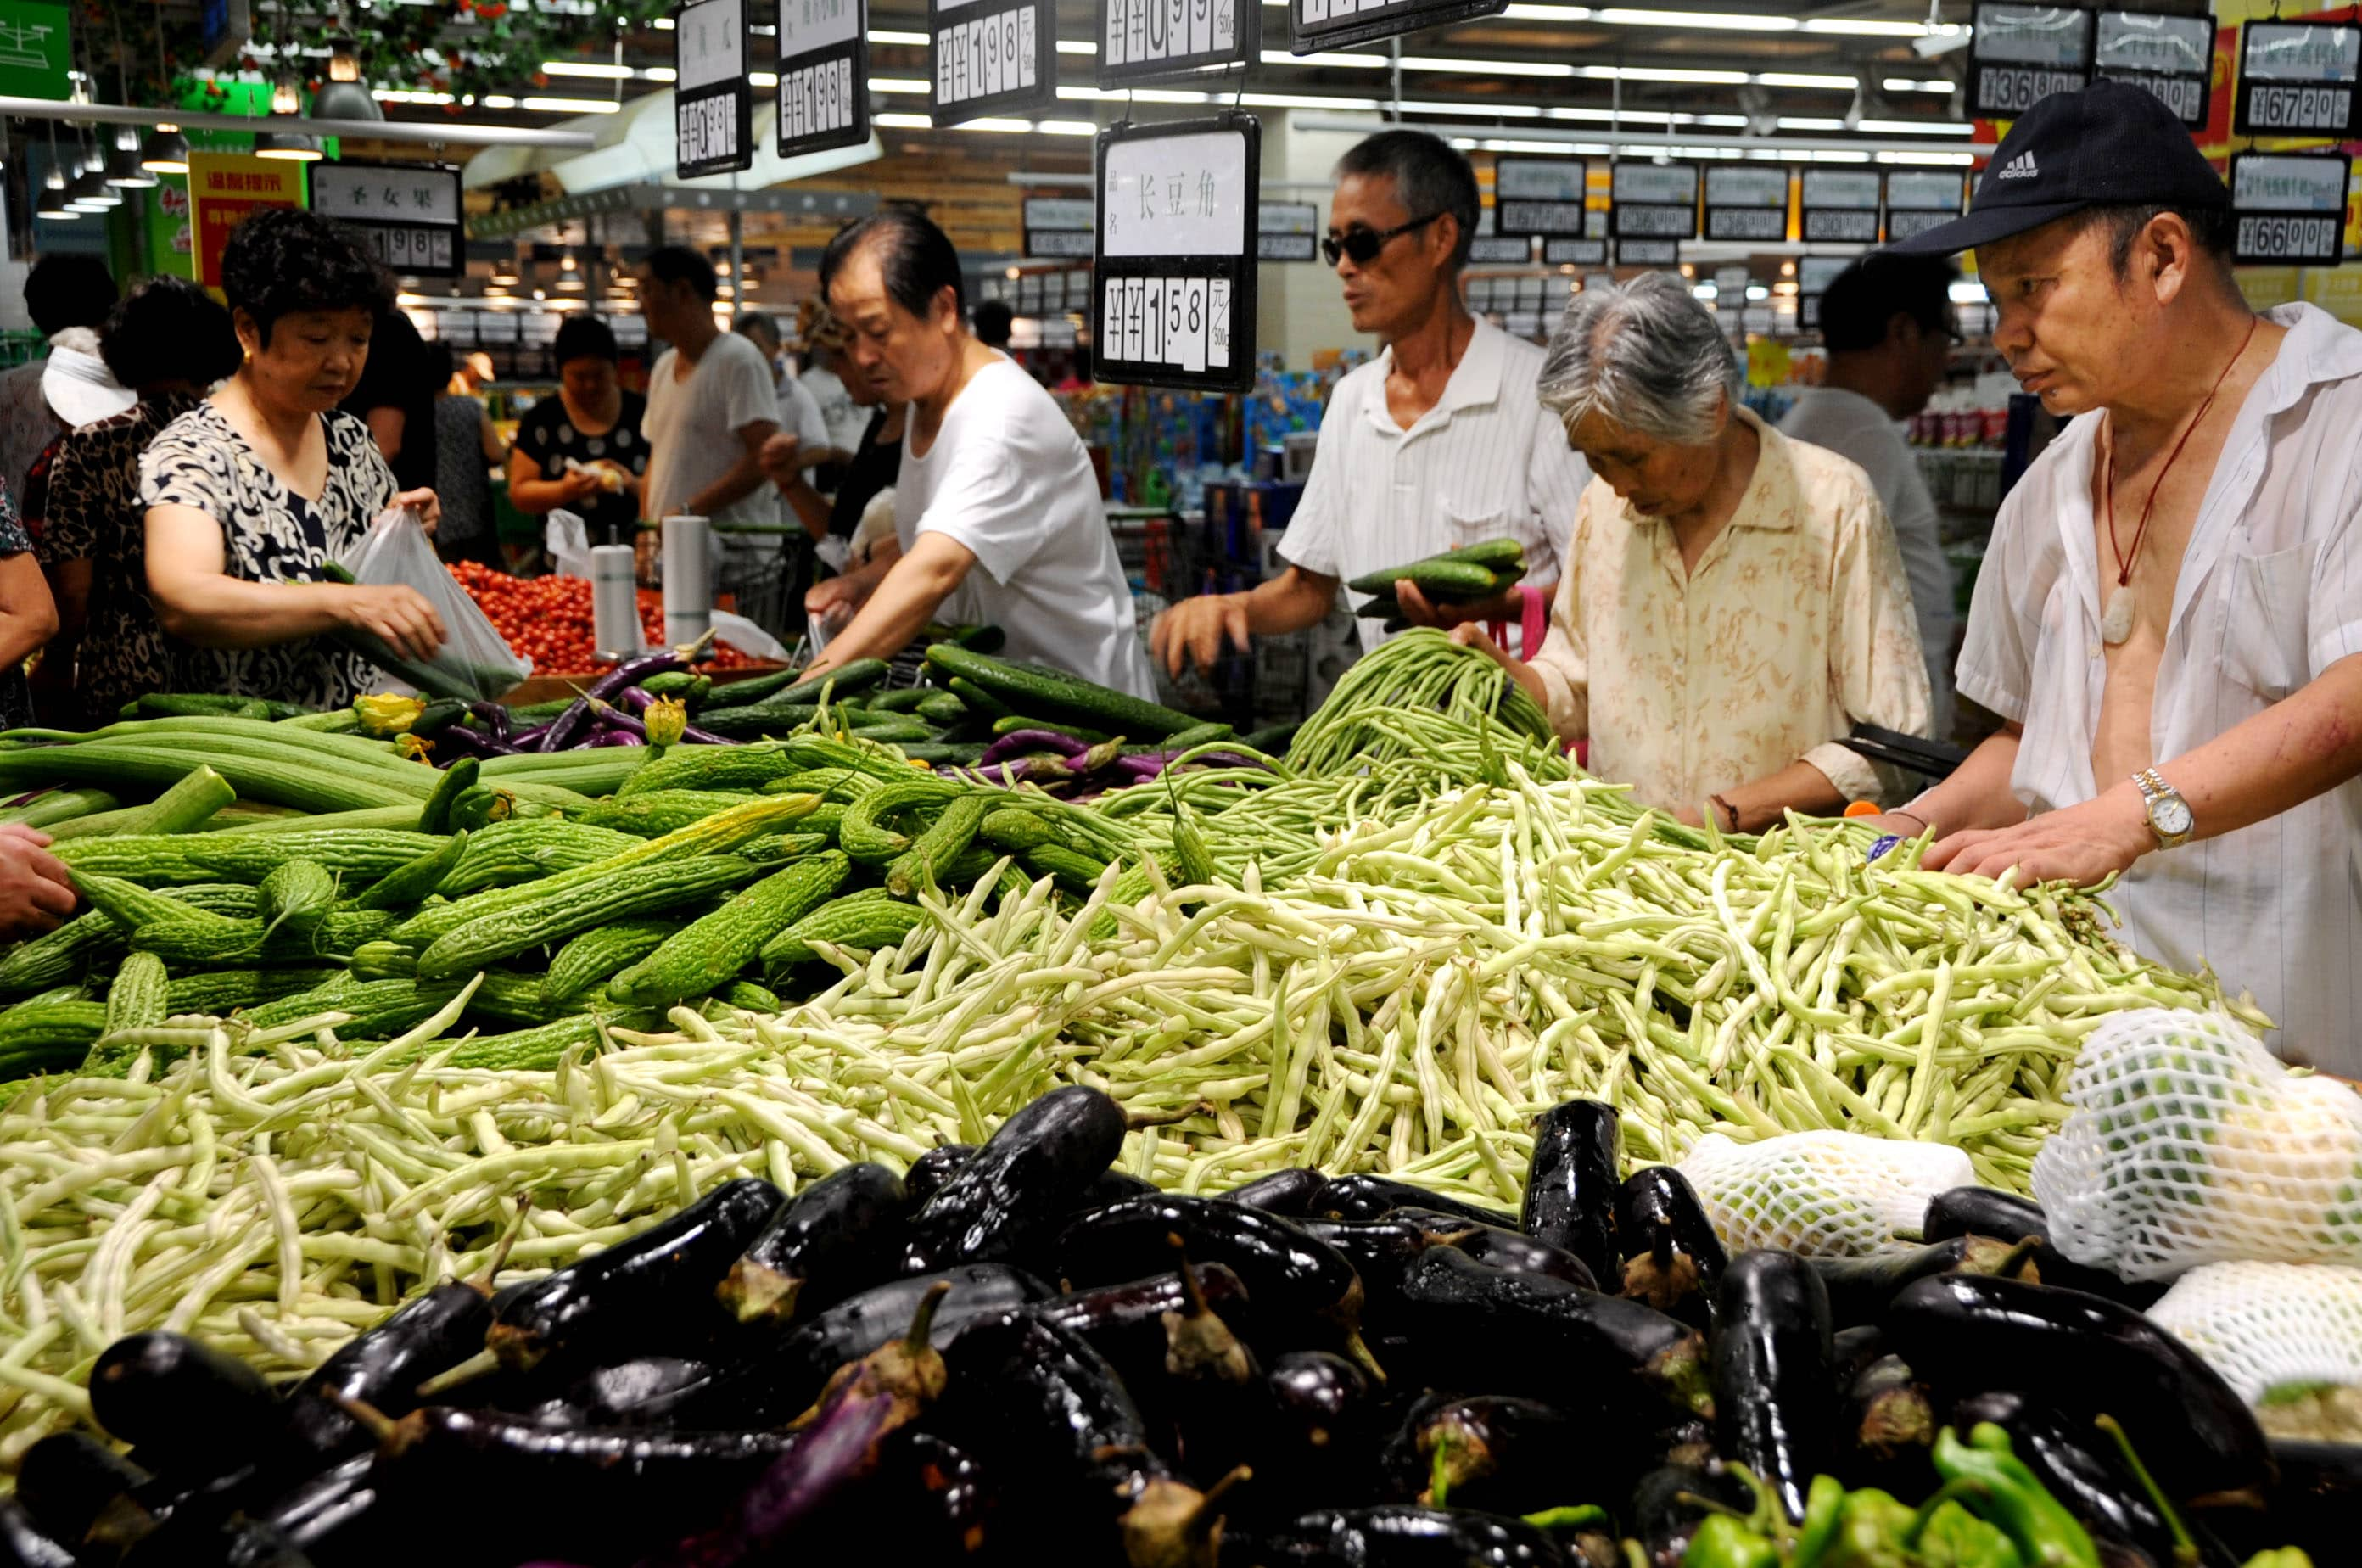 China's consumer inflation driven to 5-month high as pork prices rise